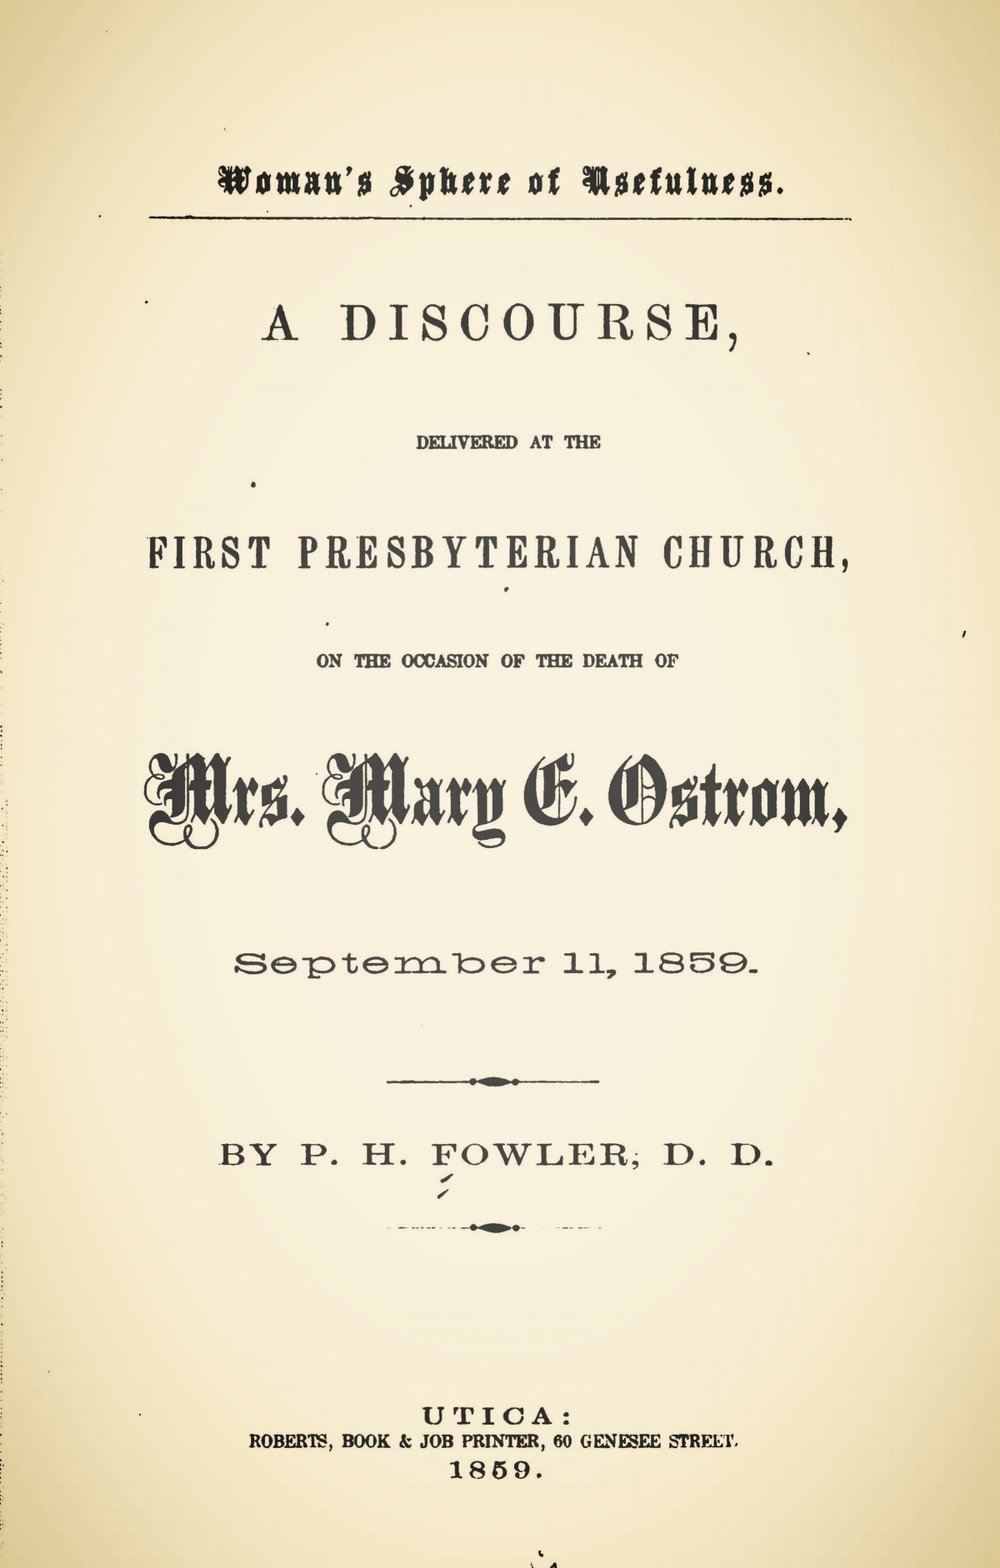 Fowler, Philemon Halsted, Woman's Sphere of Usefulness Title Page.jpg